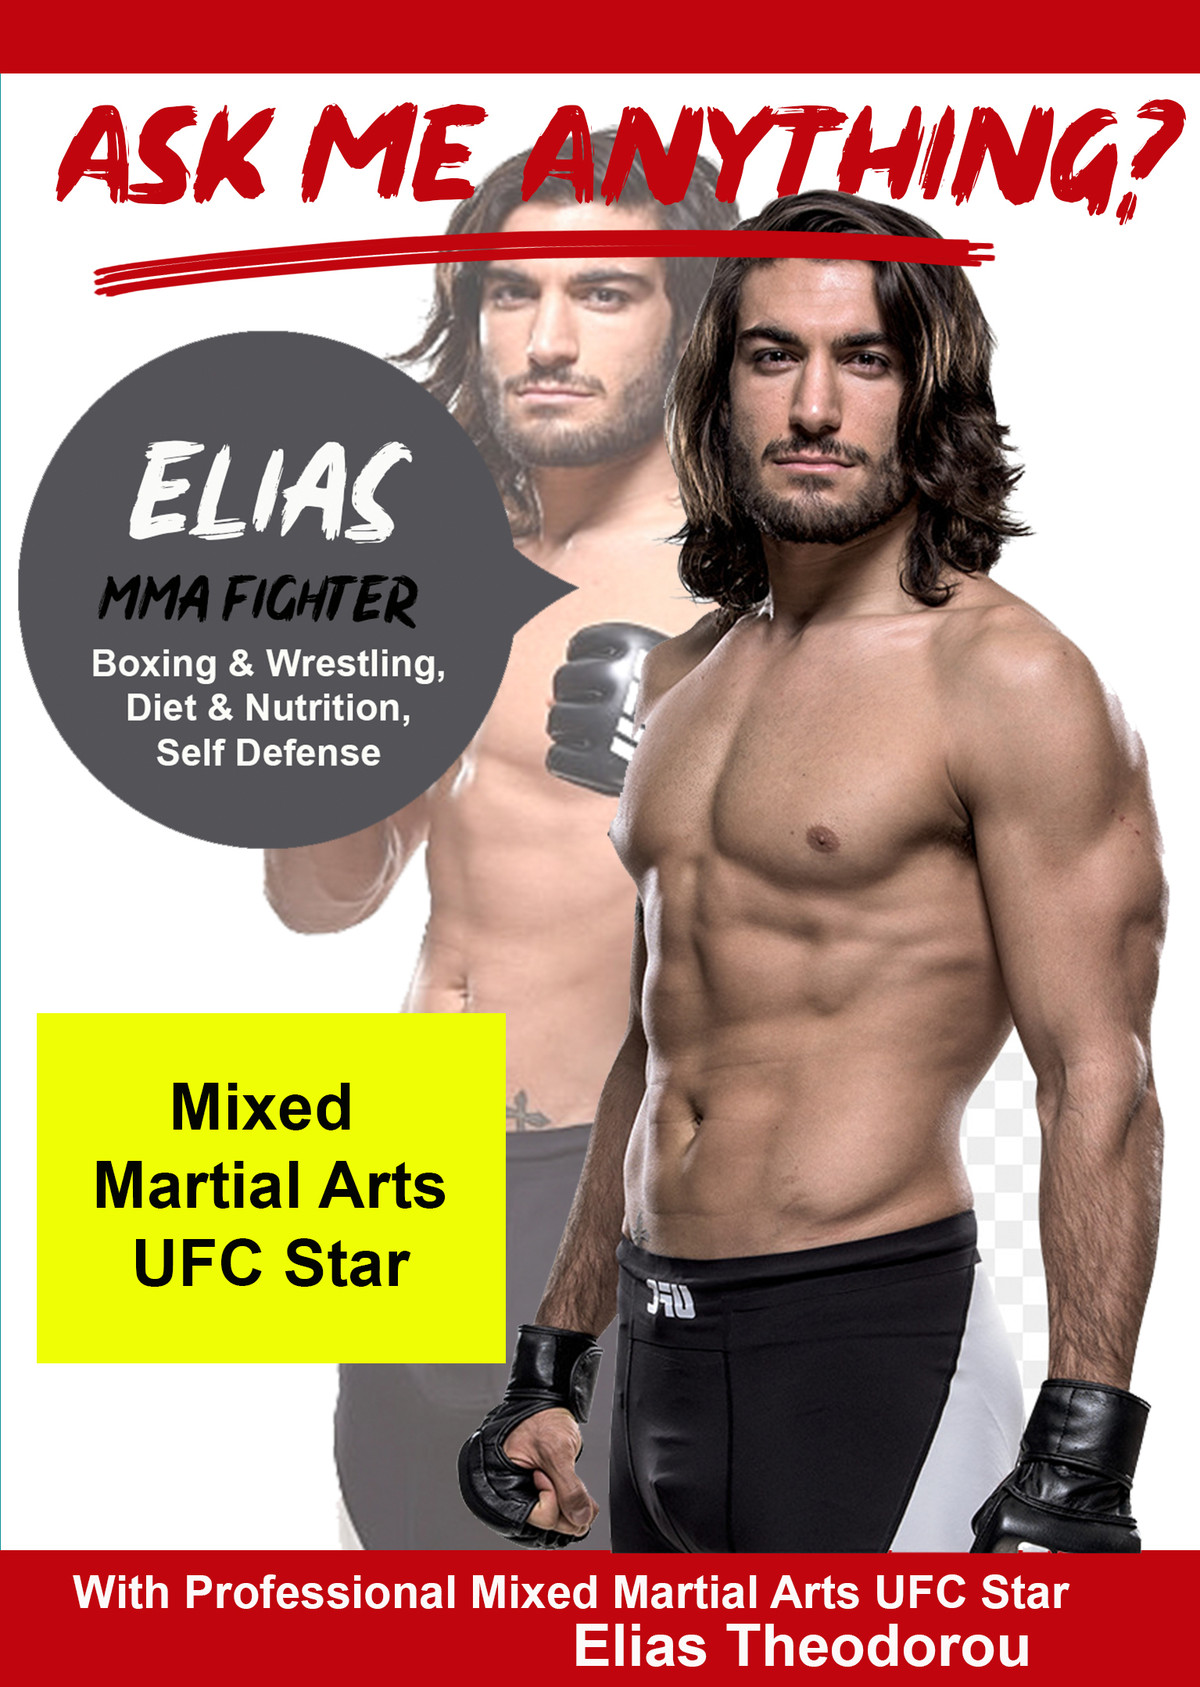 K4835 - Ask Me Anything about being a MMA Fighter with Professional Mixed Martial Arts UFC Star Elias Theodorou